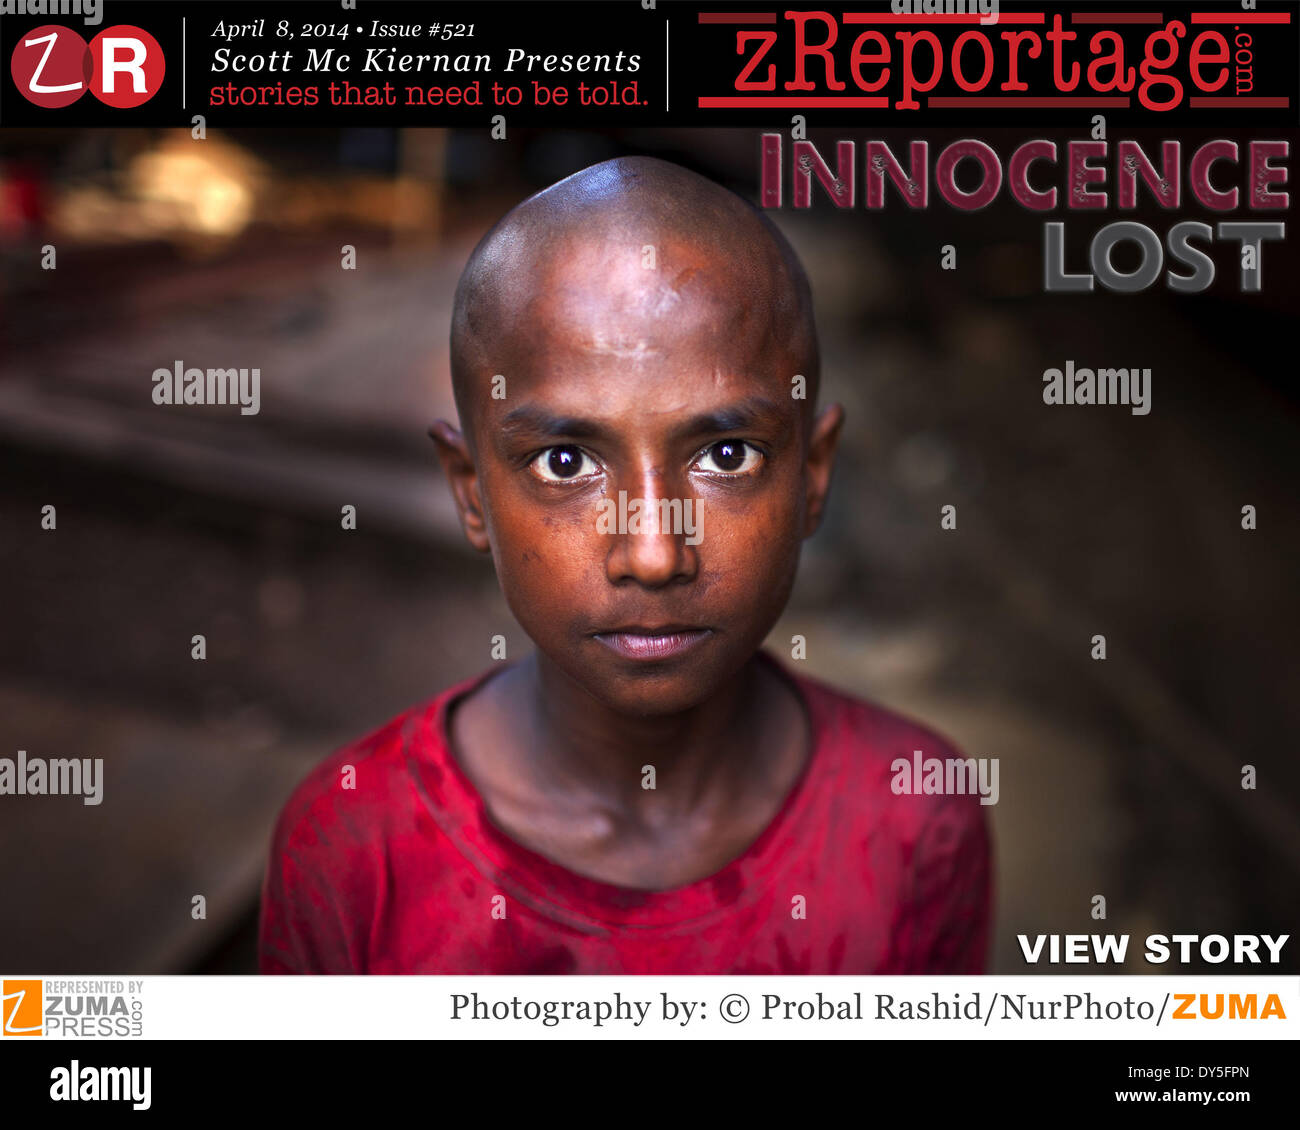 zReportage.com Story of the Week # 521 - Innocence Lost - Launched April 8, 2014 - Full multimedia experience: audio, stills, text and or video: Go to zReportage.com to see more - According to the Labour Laws of Bangladesh, the minimum legal age for employment is 14. However, as 93 per cent of child laborers work in small factories and workshops, and on the street Ð the enforcement of labour laws is virtually impossible. Poverty causes families to send children to work, often in hazardous and low-wage jobs, such as brick-chipping, construction and refuse collecting. Children are paid less than - Stock Image